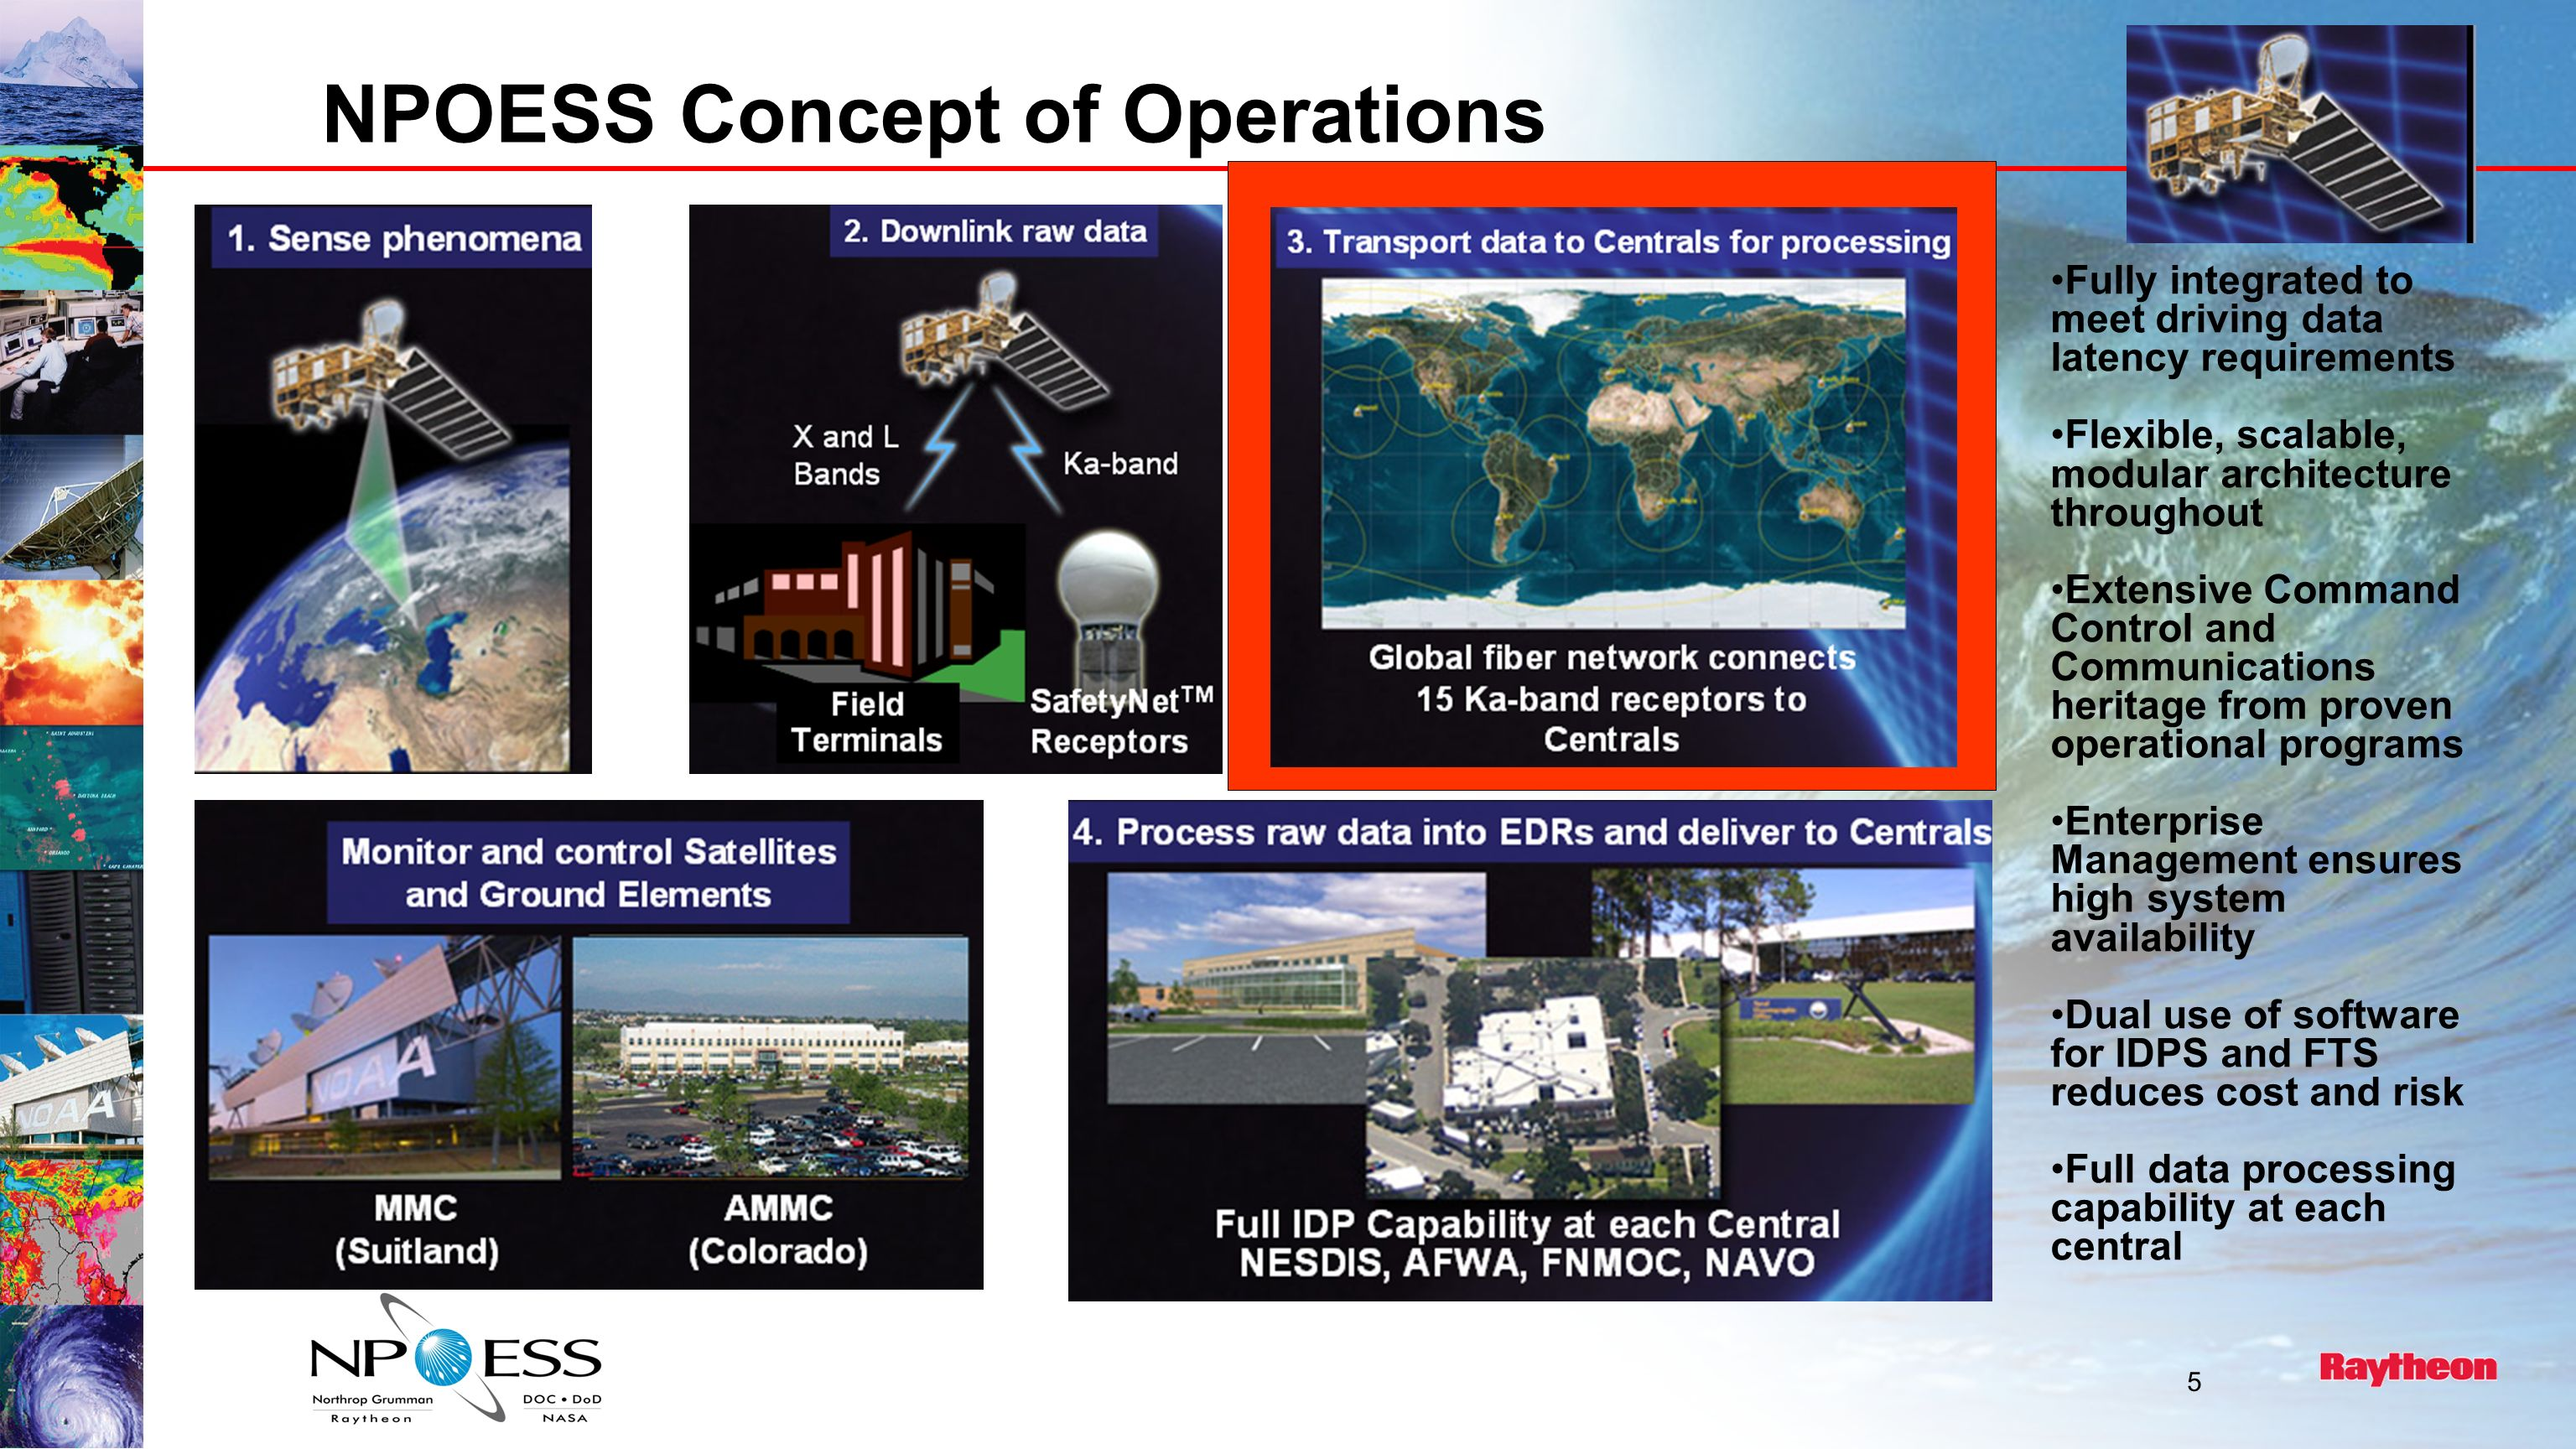 5 NPOESS Concept of Operations Fully integrated to meet driving data latency requirements Flexible, scalable, modular architecture throughout Extensive Command Control and Communications heritage from proven operational programs Enterprise Management ensures high system availability Dual use of software for IDPS and FTS reduces cost and risk Full data processing capability at each central